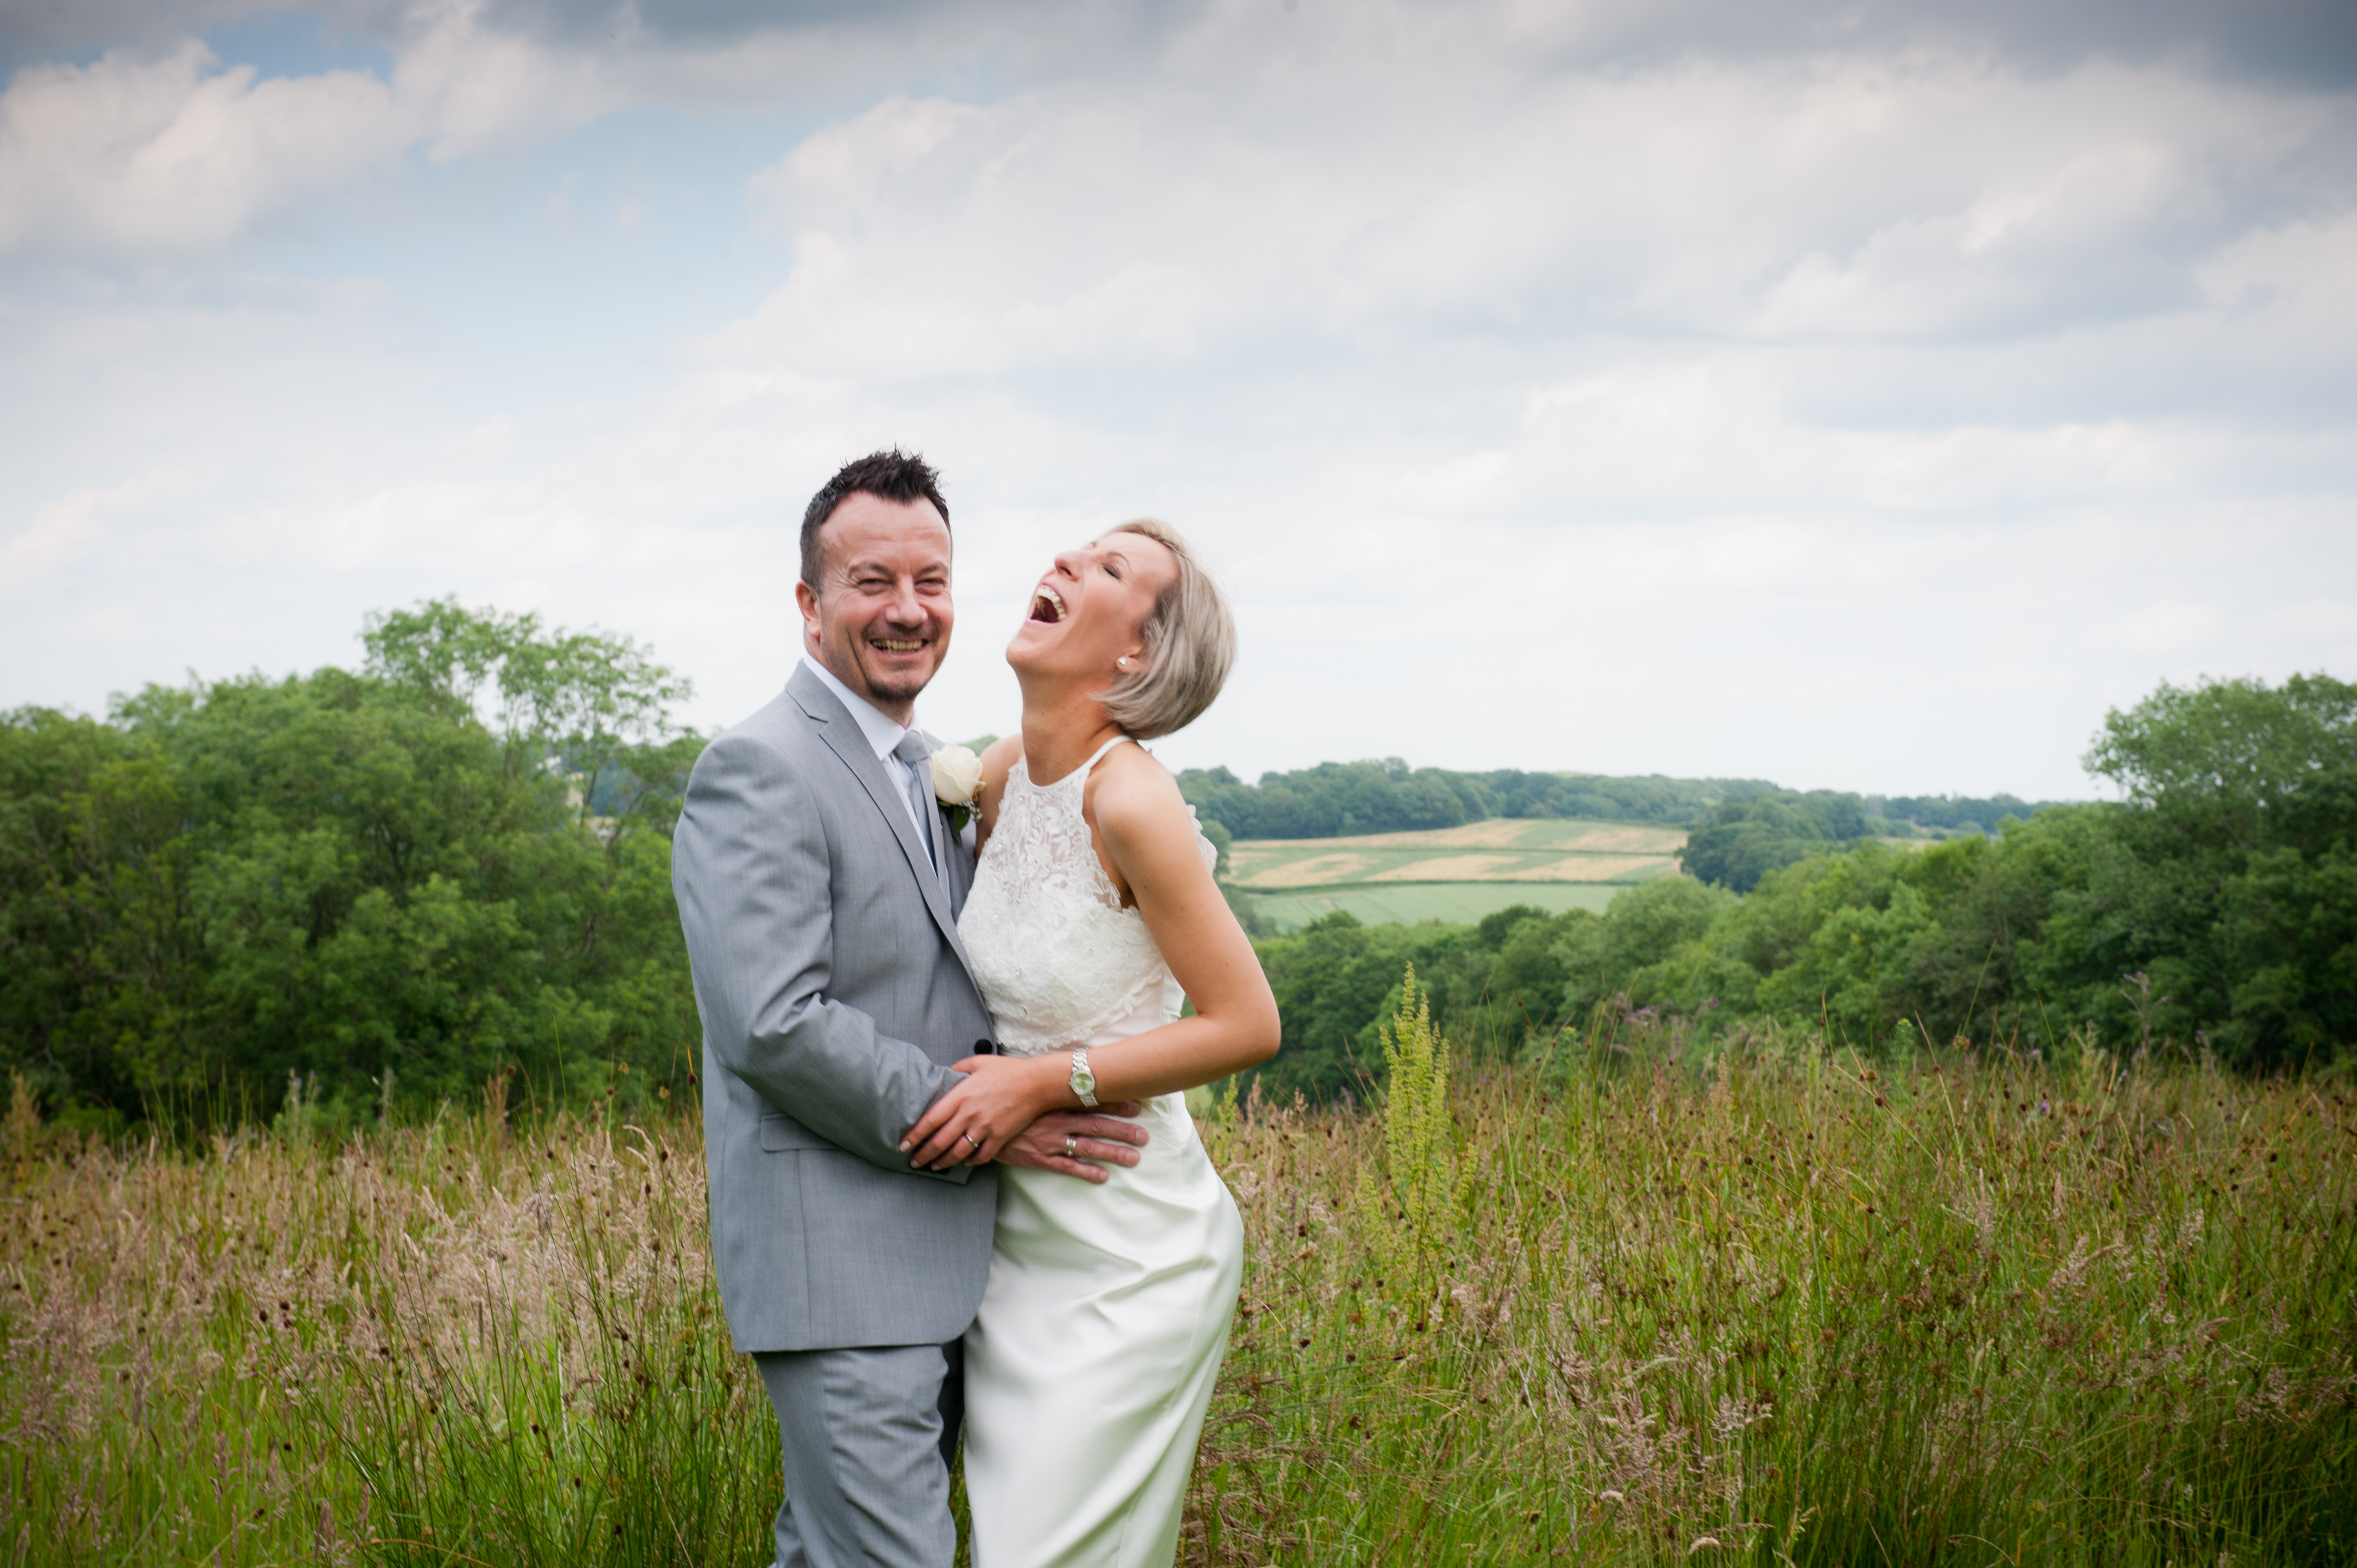 how to nail your wedding photos in 5 easy steps